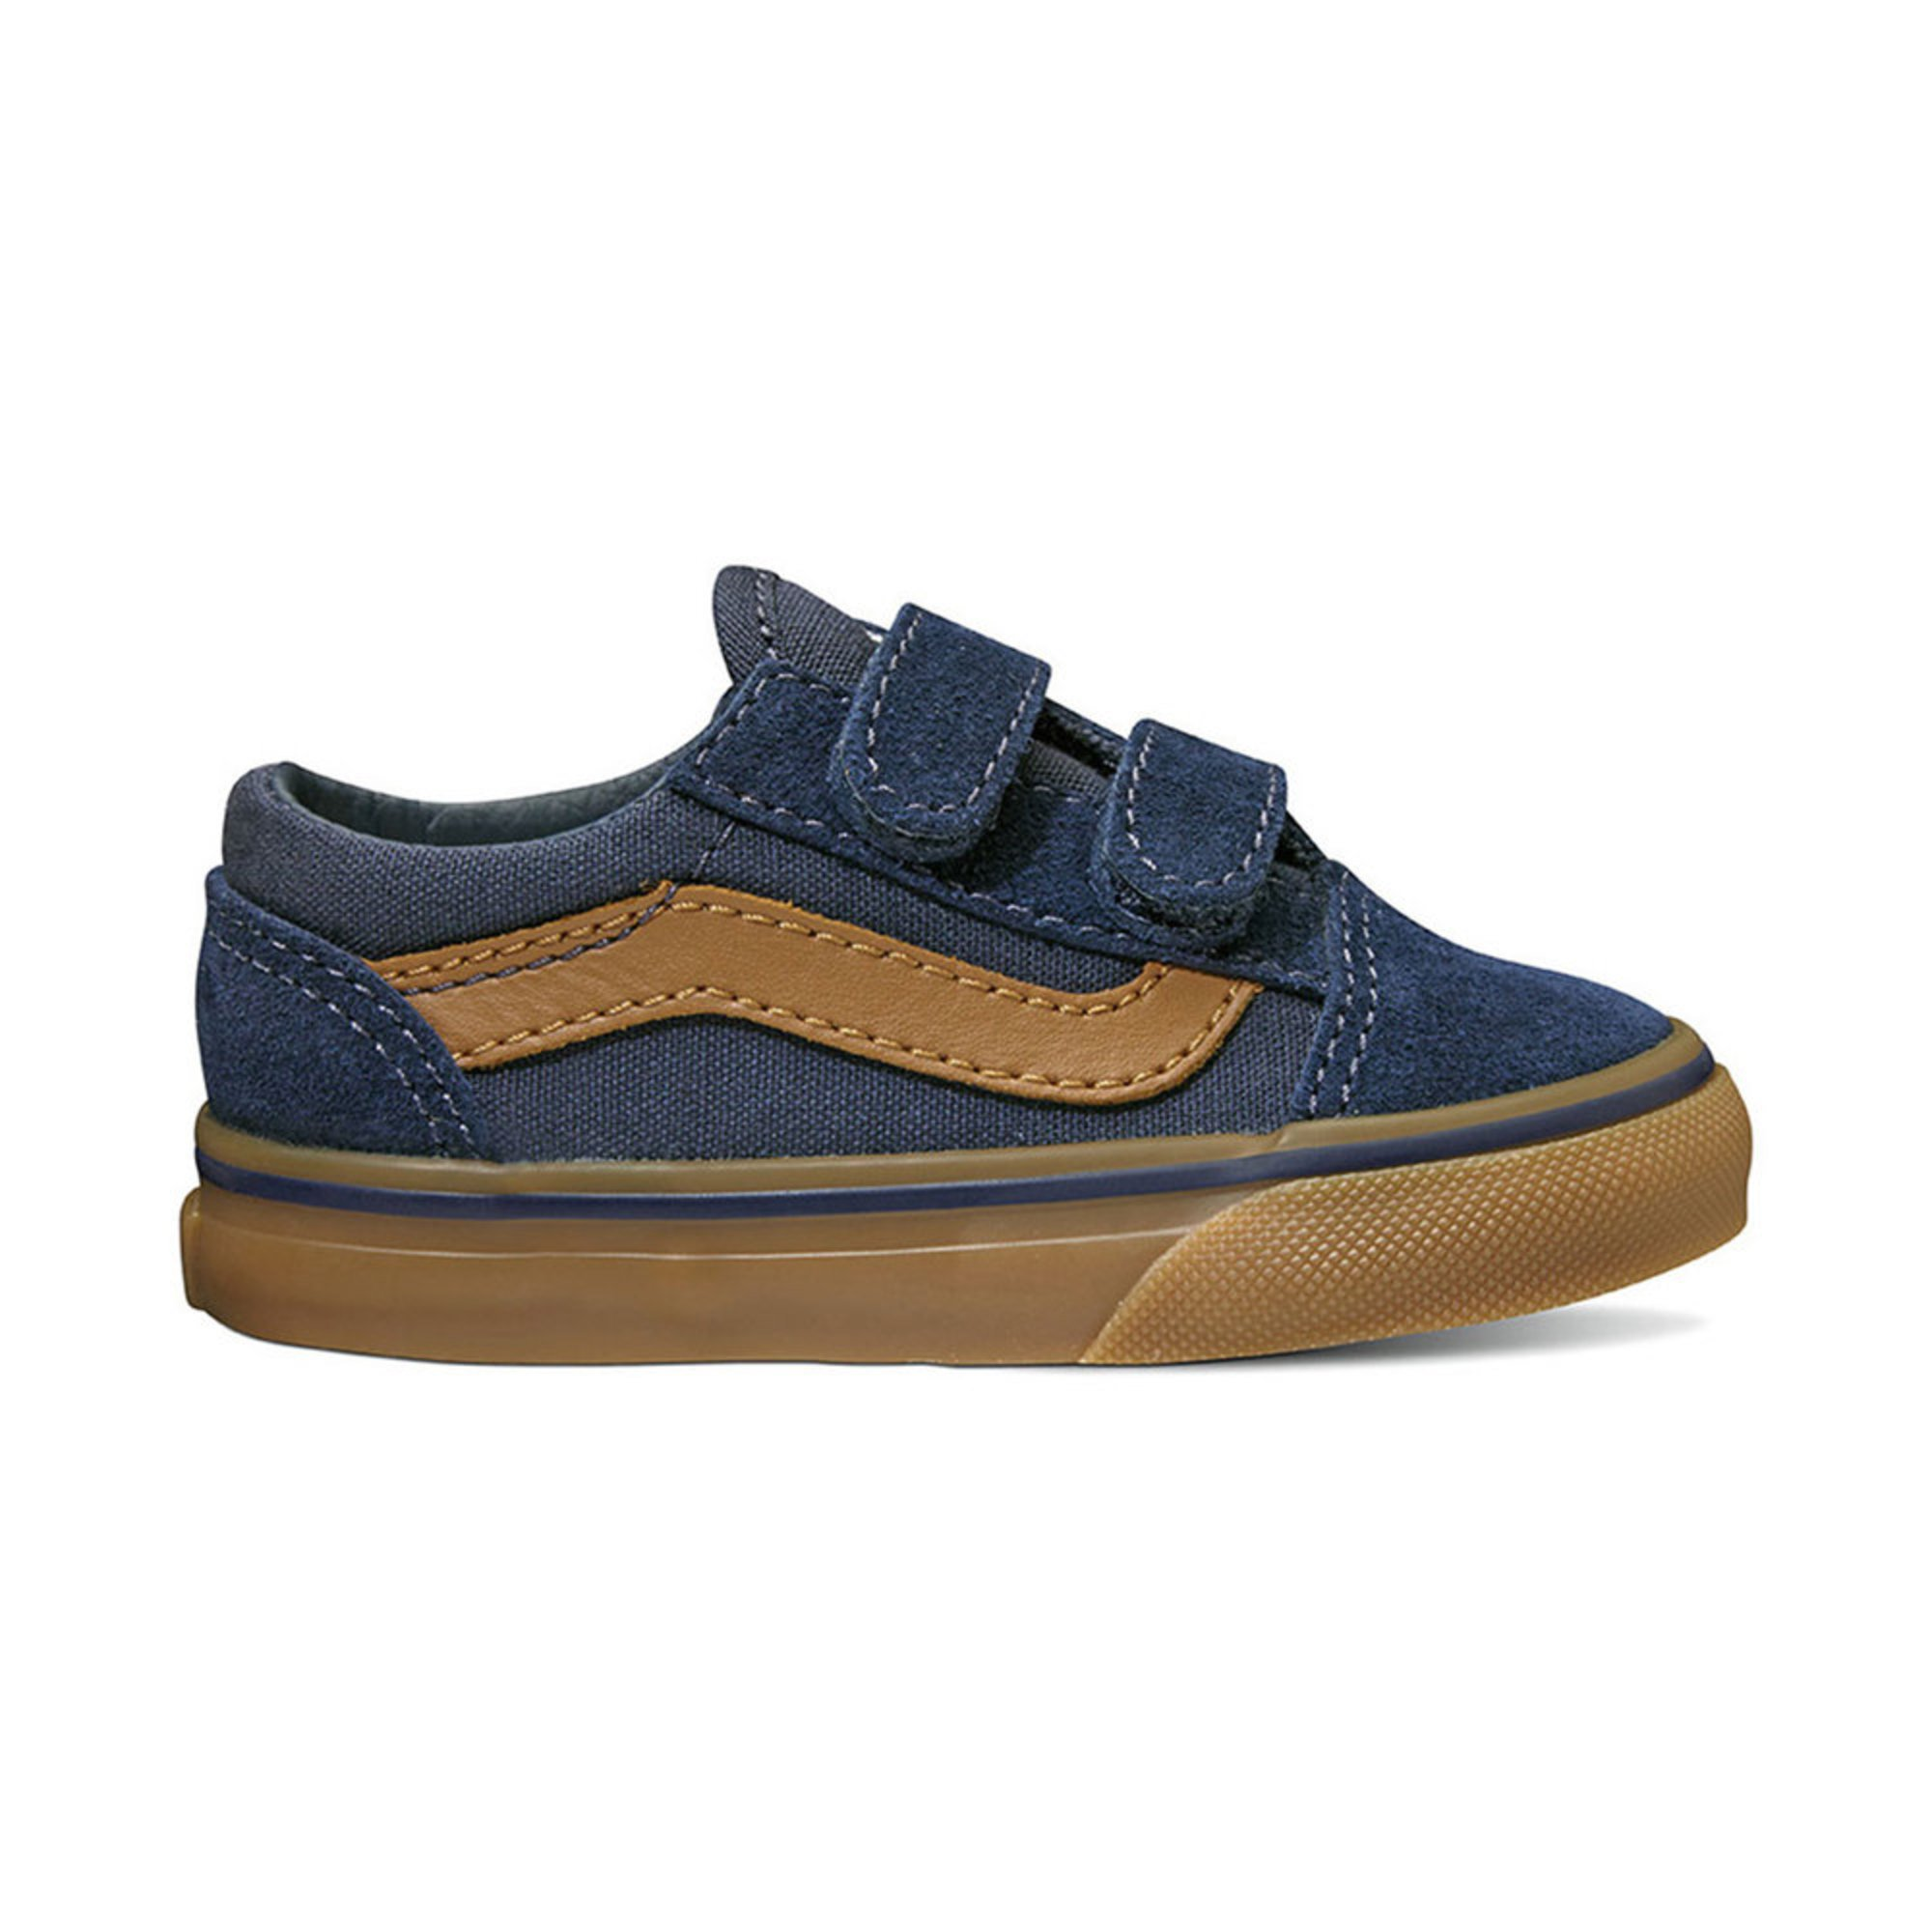 5d88257603f99 Vans Boys Old Skool Velcro Skate Shoe (infant/toddler) | Toddler ...